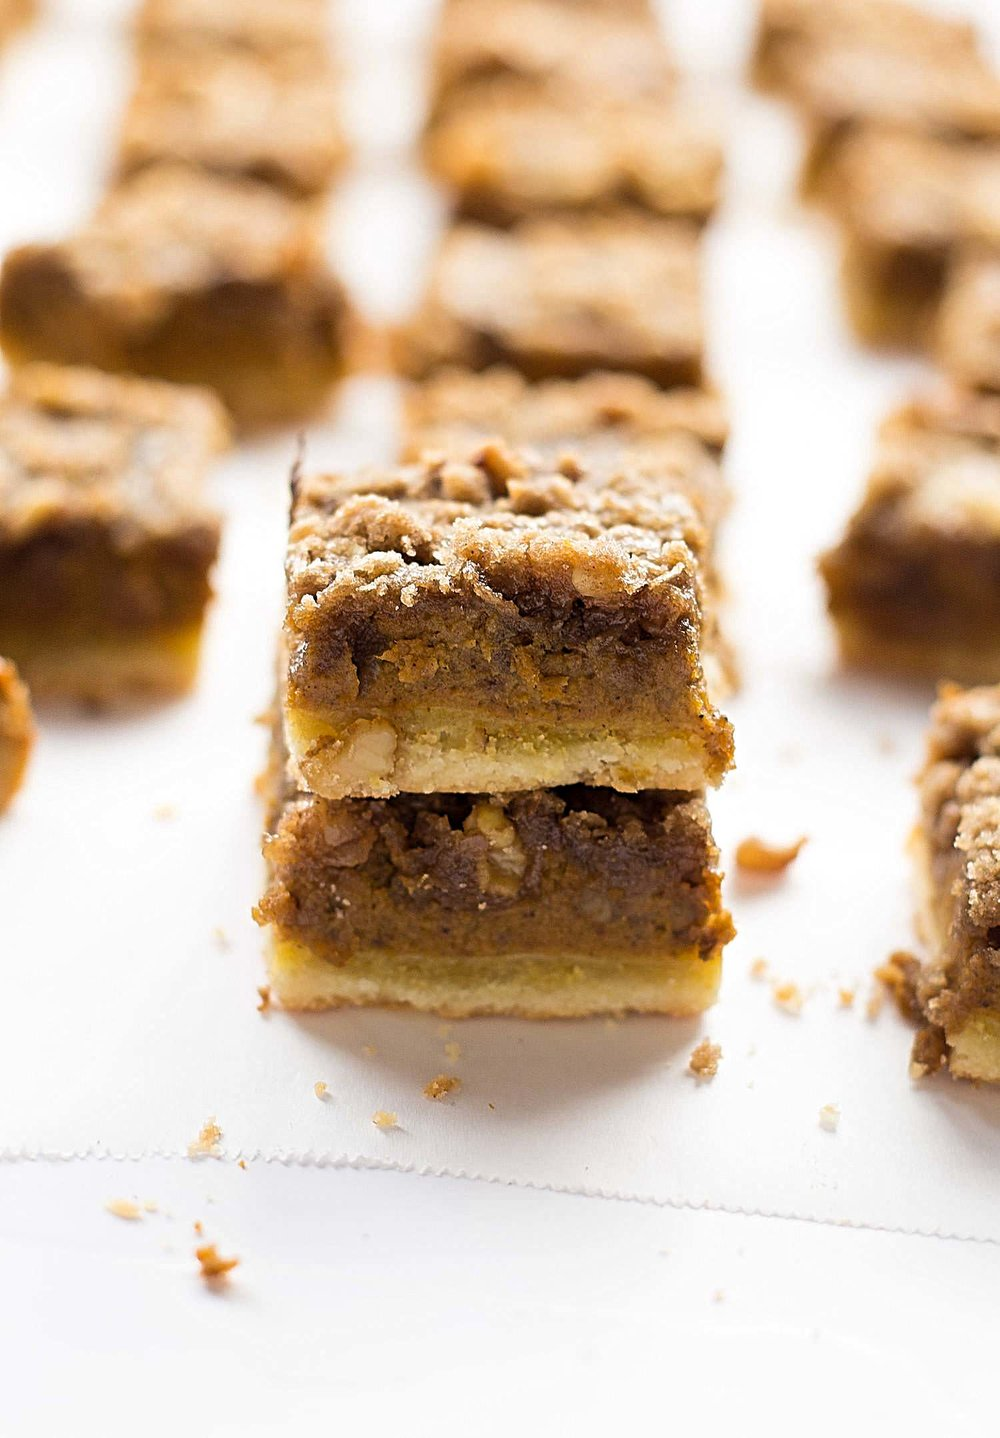 Pumpkin Pie Streusel Bars: buttery shortbread crust, creamy pumpkin filling, and a cinnamon streusel on top. Thanksgiving dessert perfection! | TrufflesandTrends.com